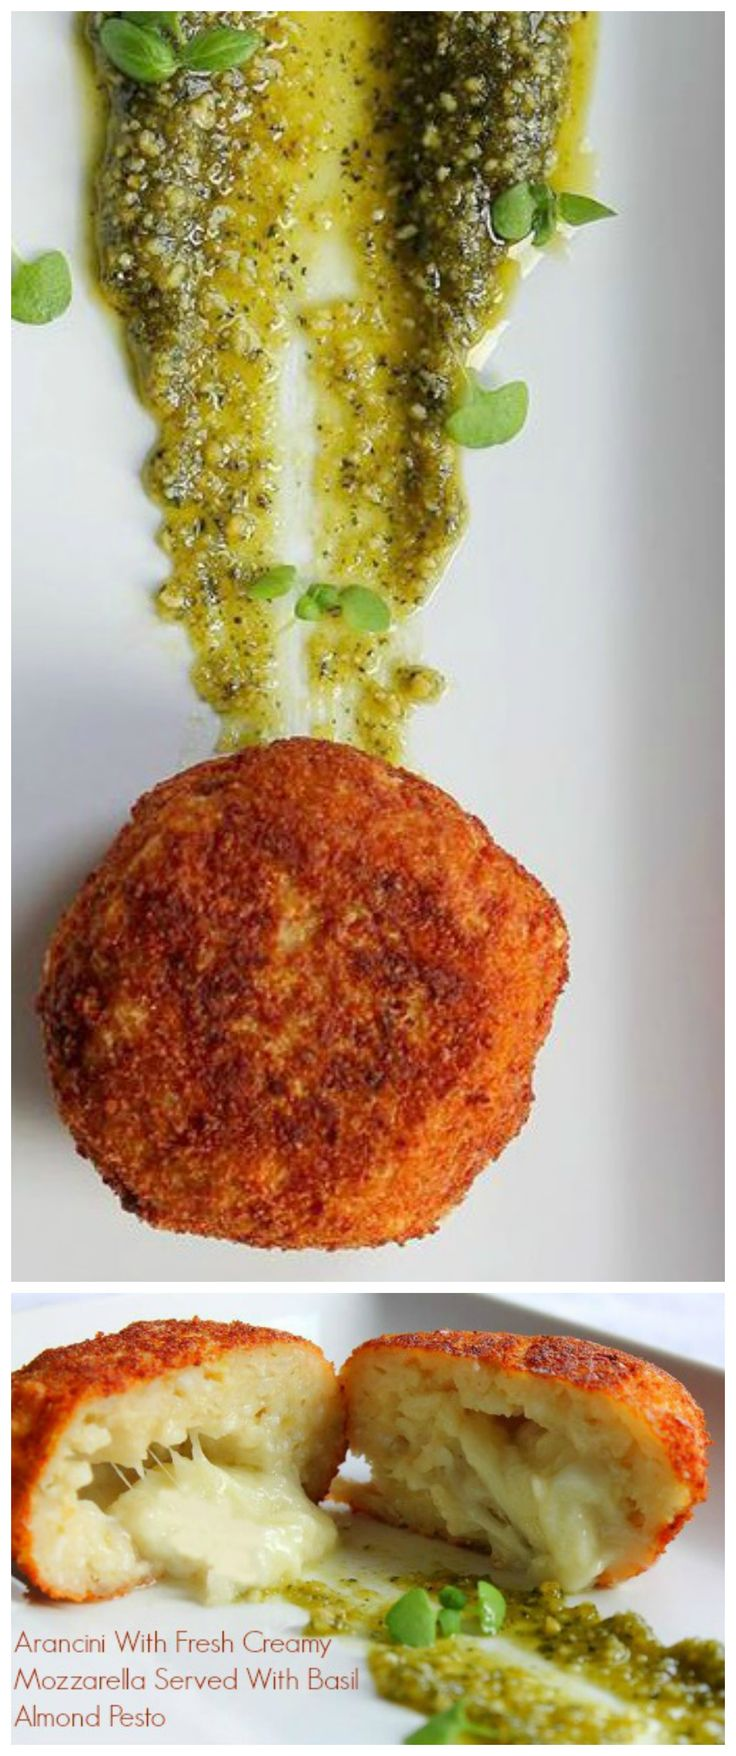 Fried rice balls stuffed with creamy #mozzarella coated with #breadcrumbs make excellent #antipasti at parties!